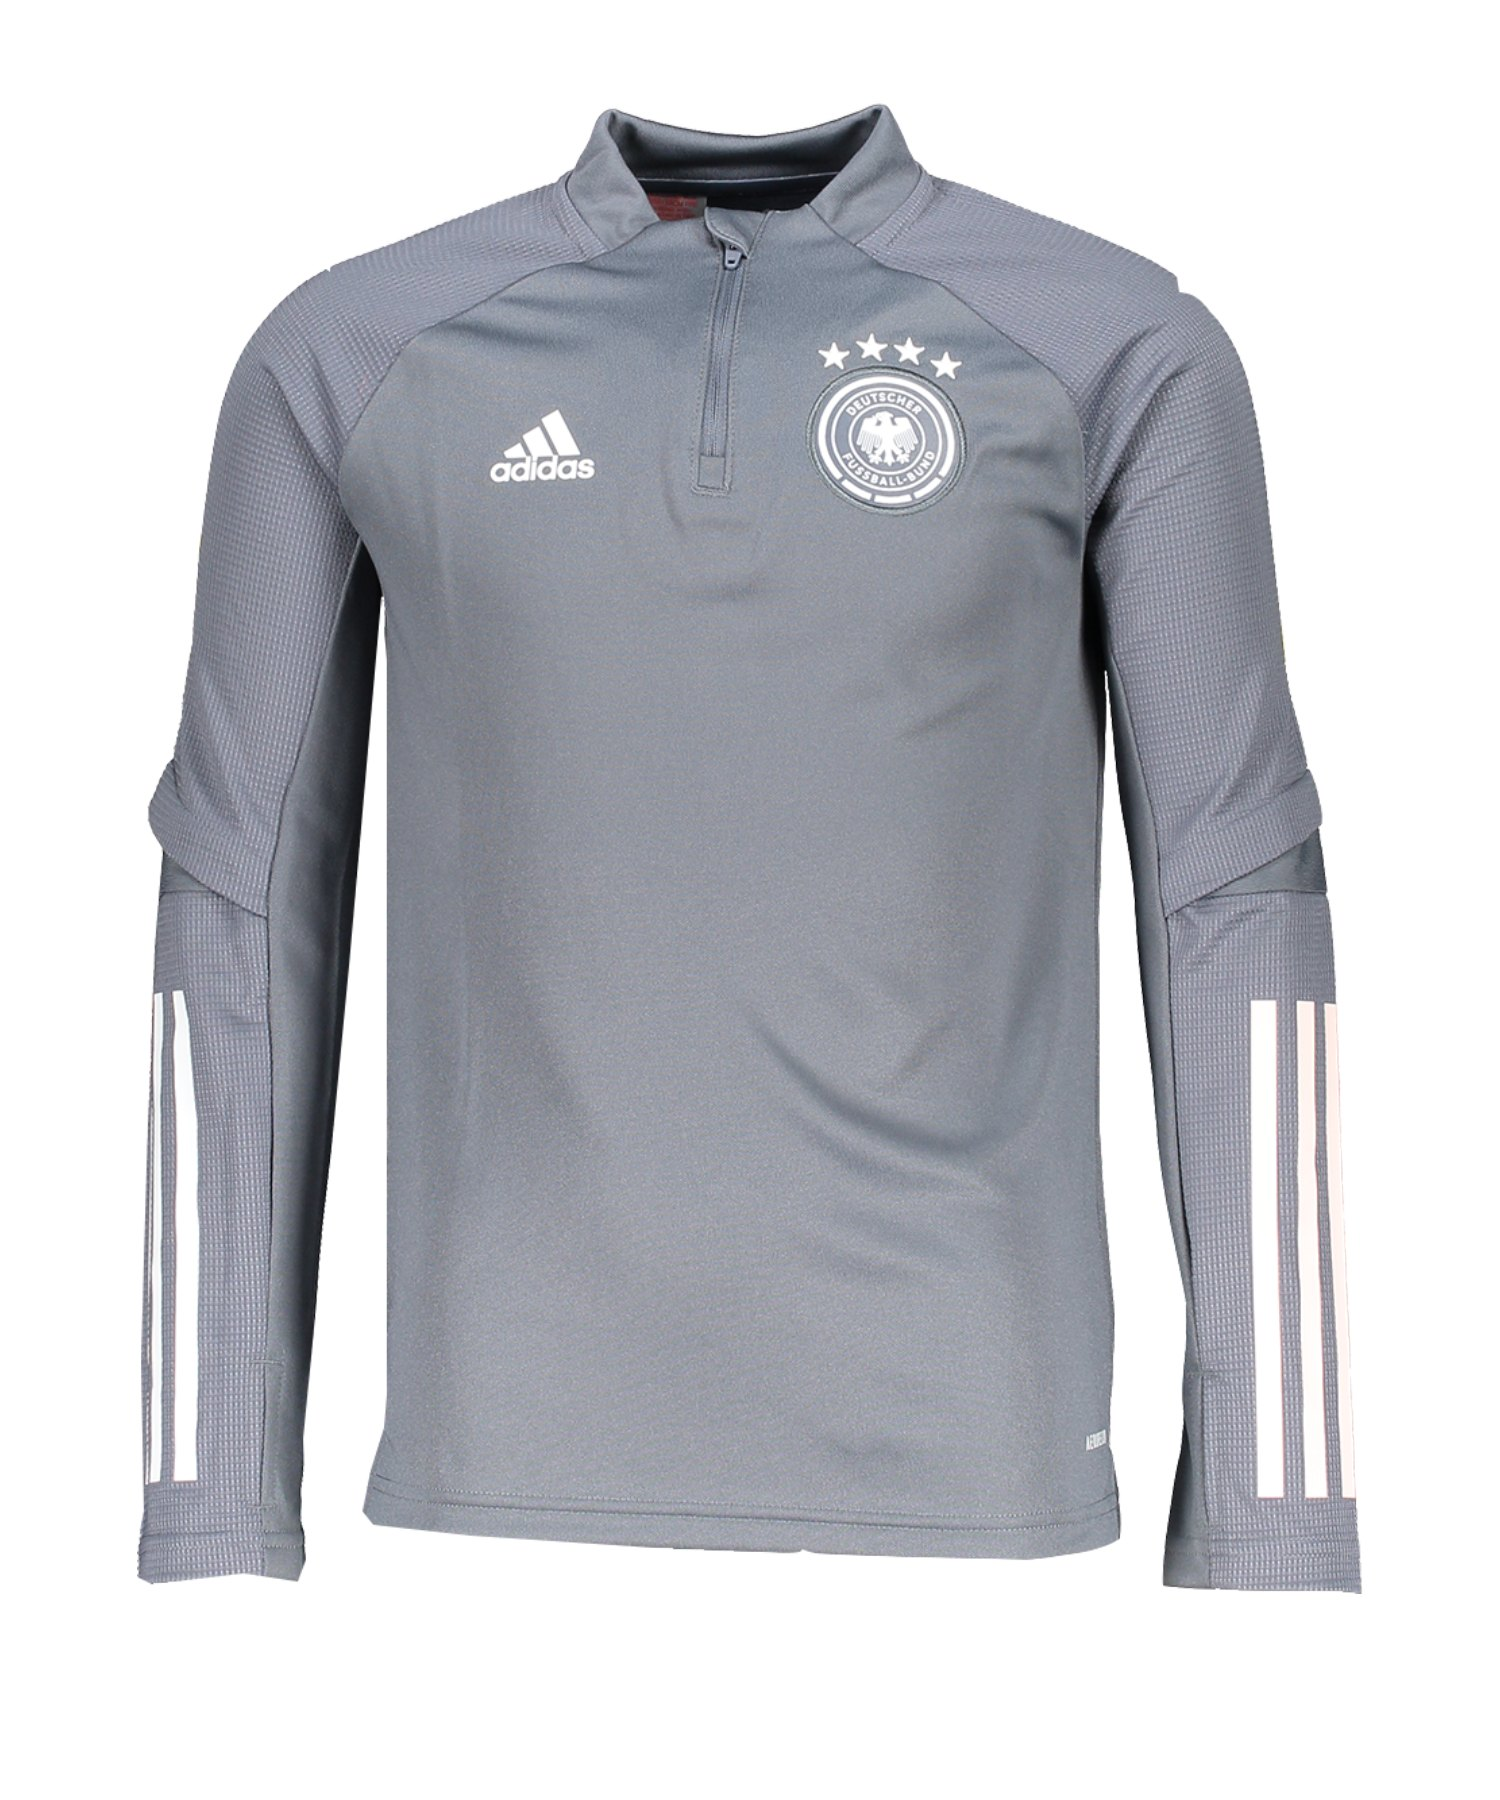 adidas DFB Deutschland Trainingstop LS Kids Grau - grau